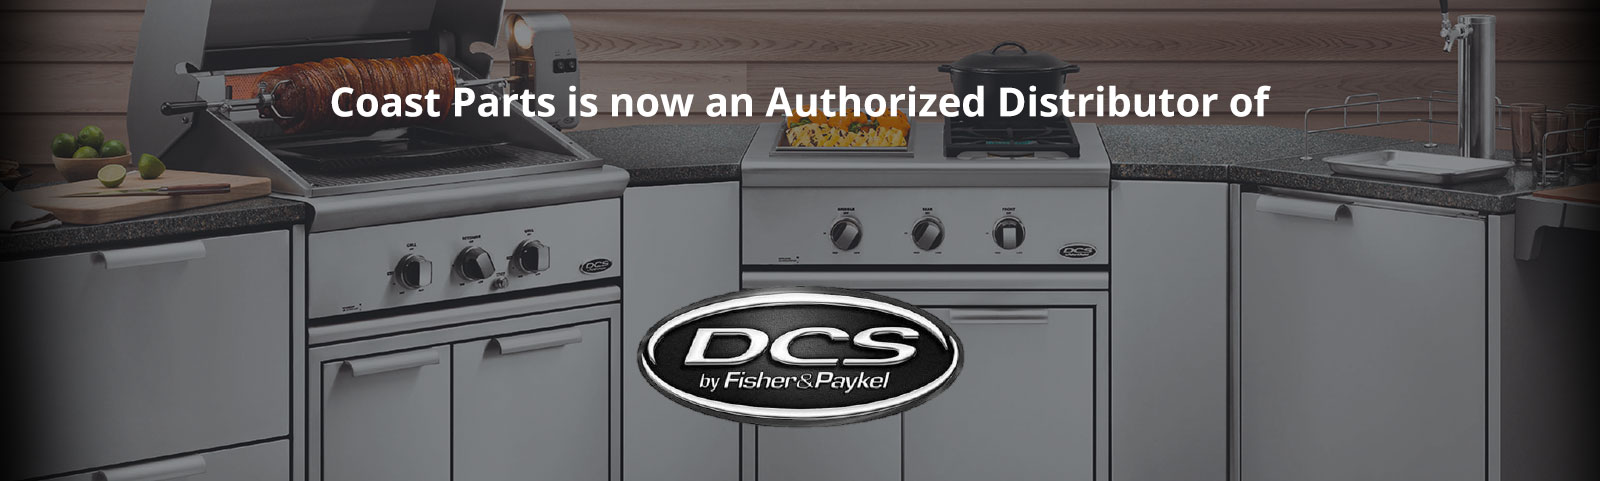 Coast Parts is now an authorized distributor of DCS Appliances